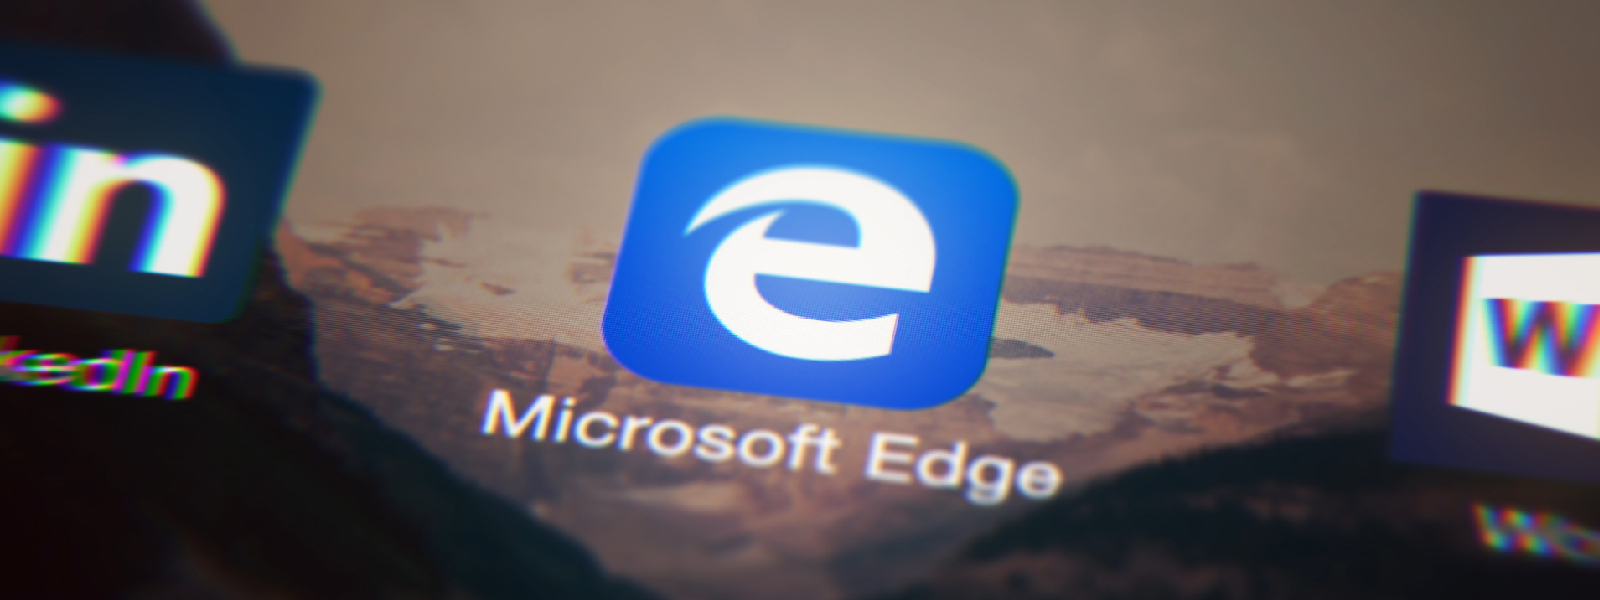 Microsoft Edge App Download for Android and IOS | Microsoft Edge